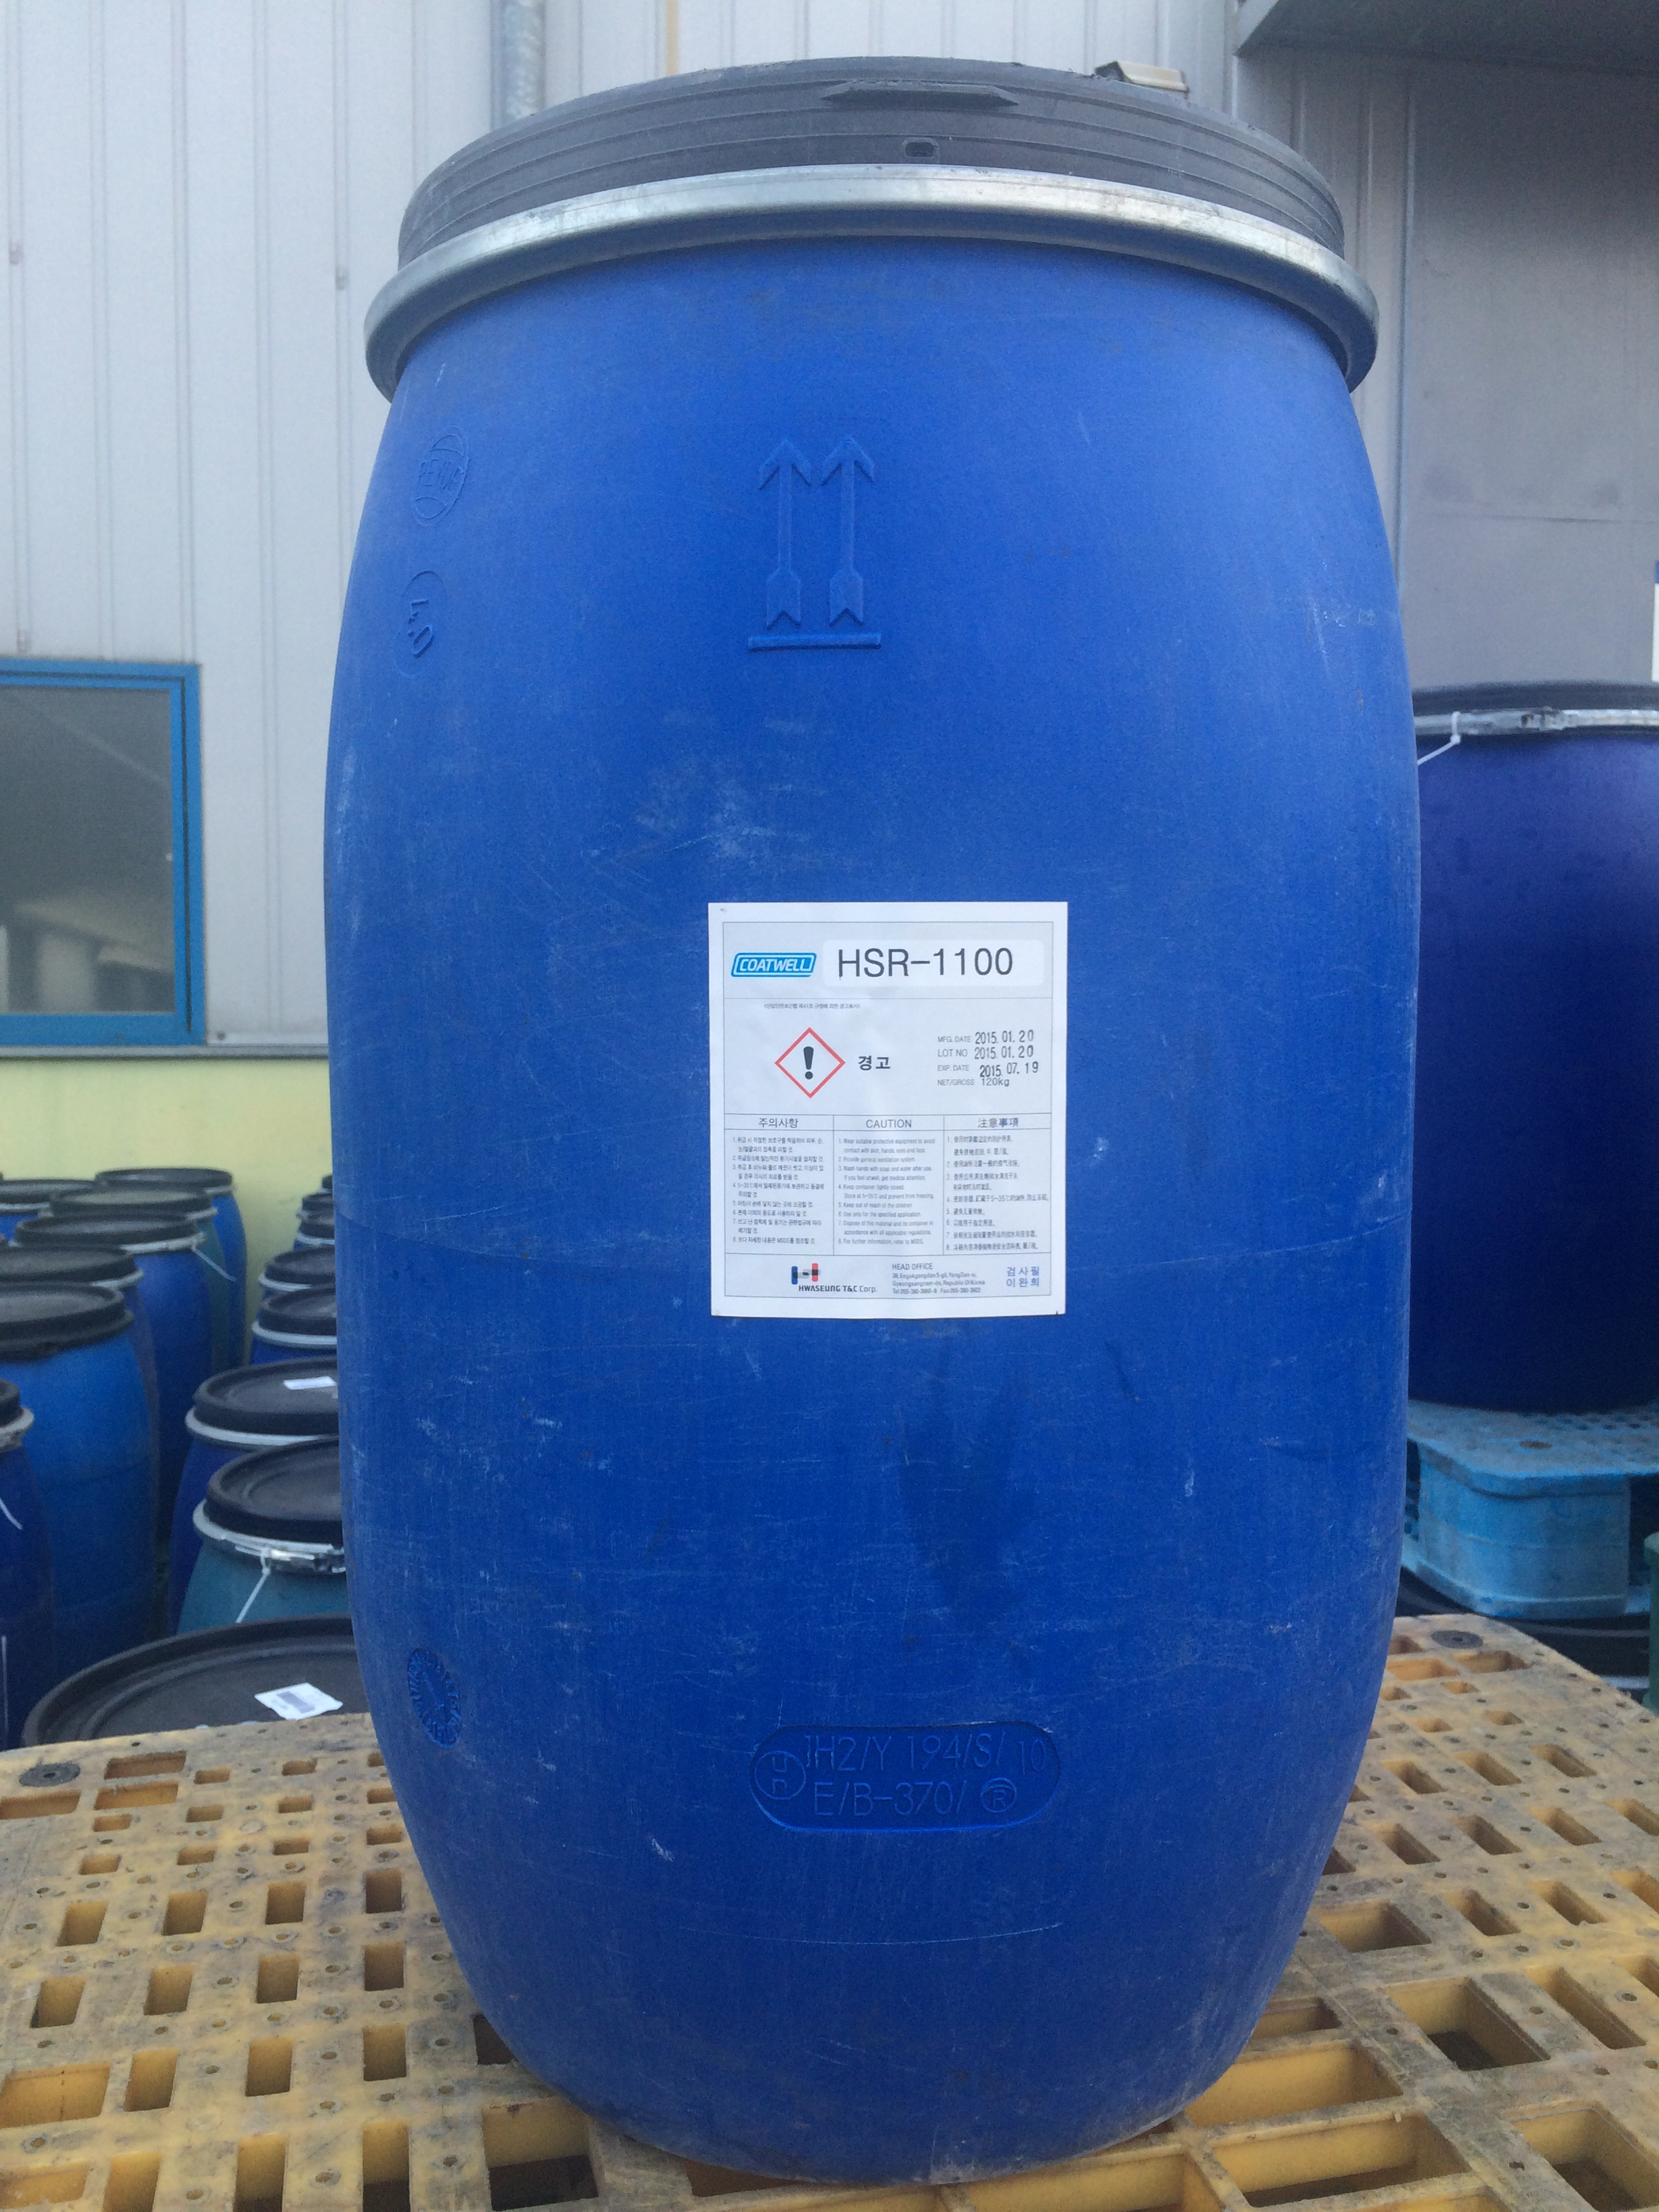 Releasing agent has applied to Rubber product or High/Low pressure hose for the motor vehicle manufa...